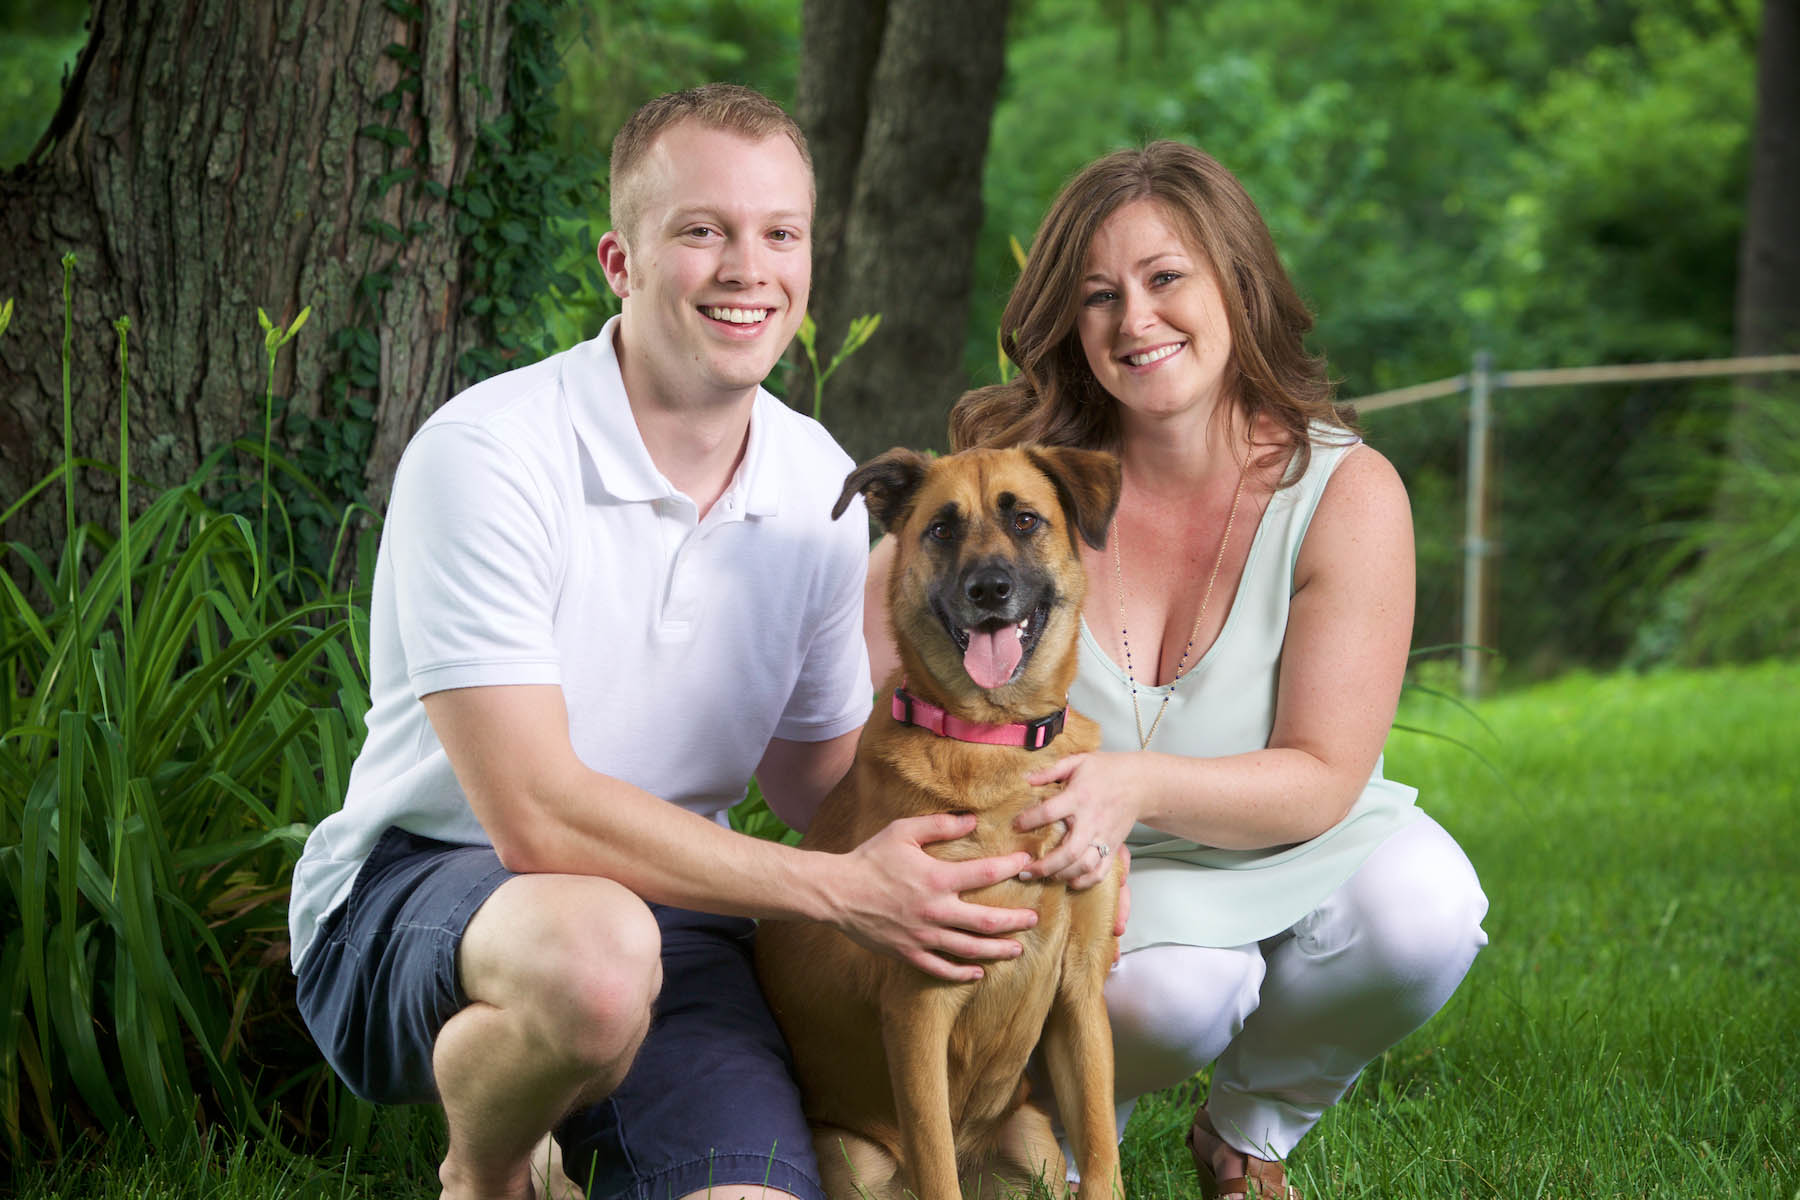 At home with their dog — St. Louis engagement session for Alissa & Ben. Wedding photography by Tiffany & Steve Warmowski.